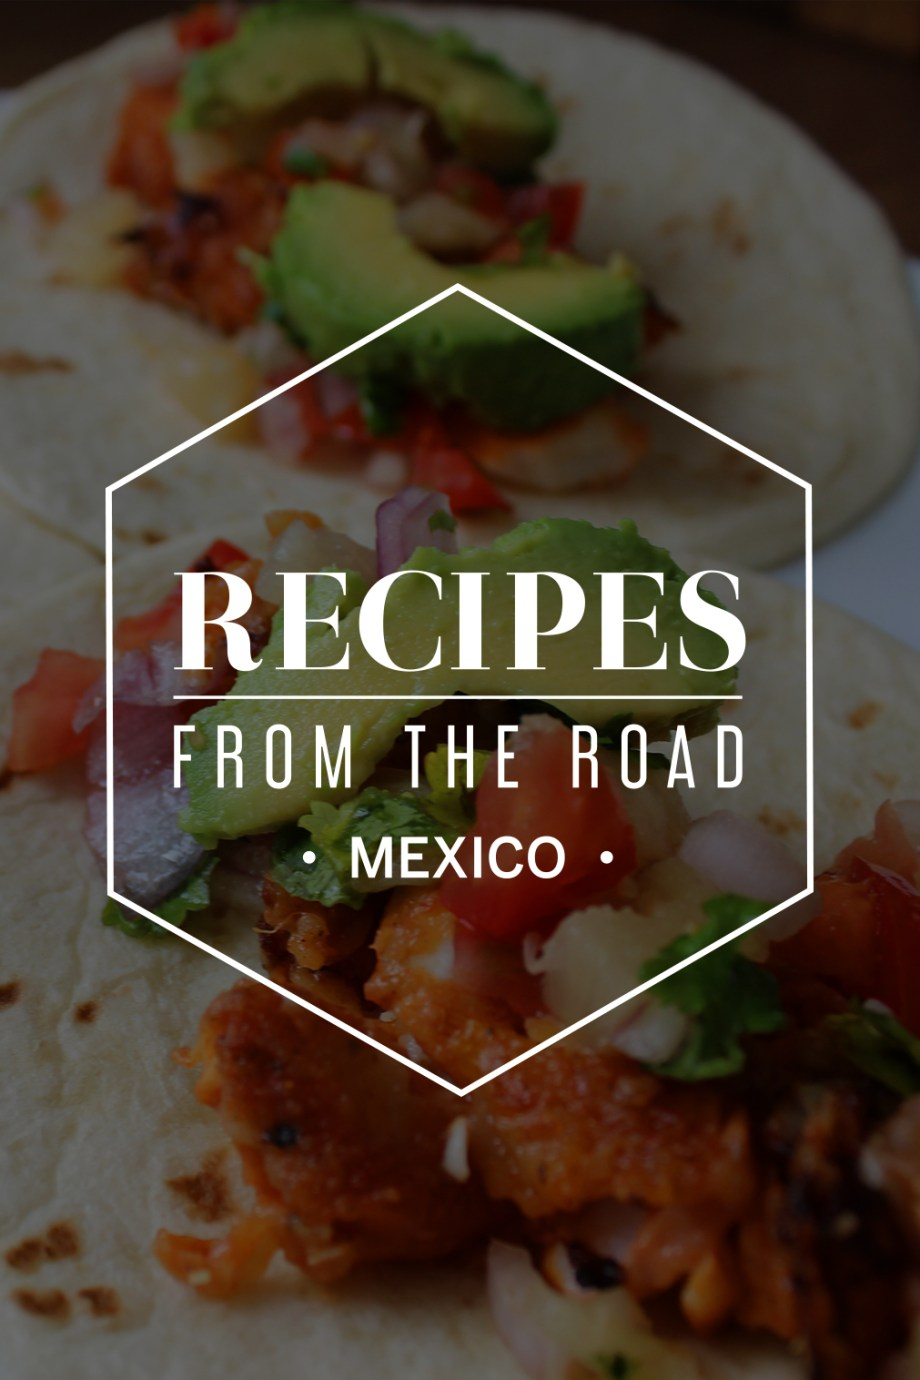 Tacos are everywhere in Mexico, from street stands to restaurants – they're a quick snack as well as a full meal. Fish tacos are generally deep fried in batter, so we combined our recipe with the marinade for tacos al pastor and shallow fried the fish to make it a little(!) healthier.